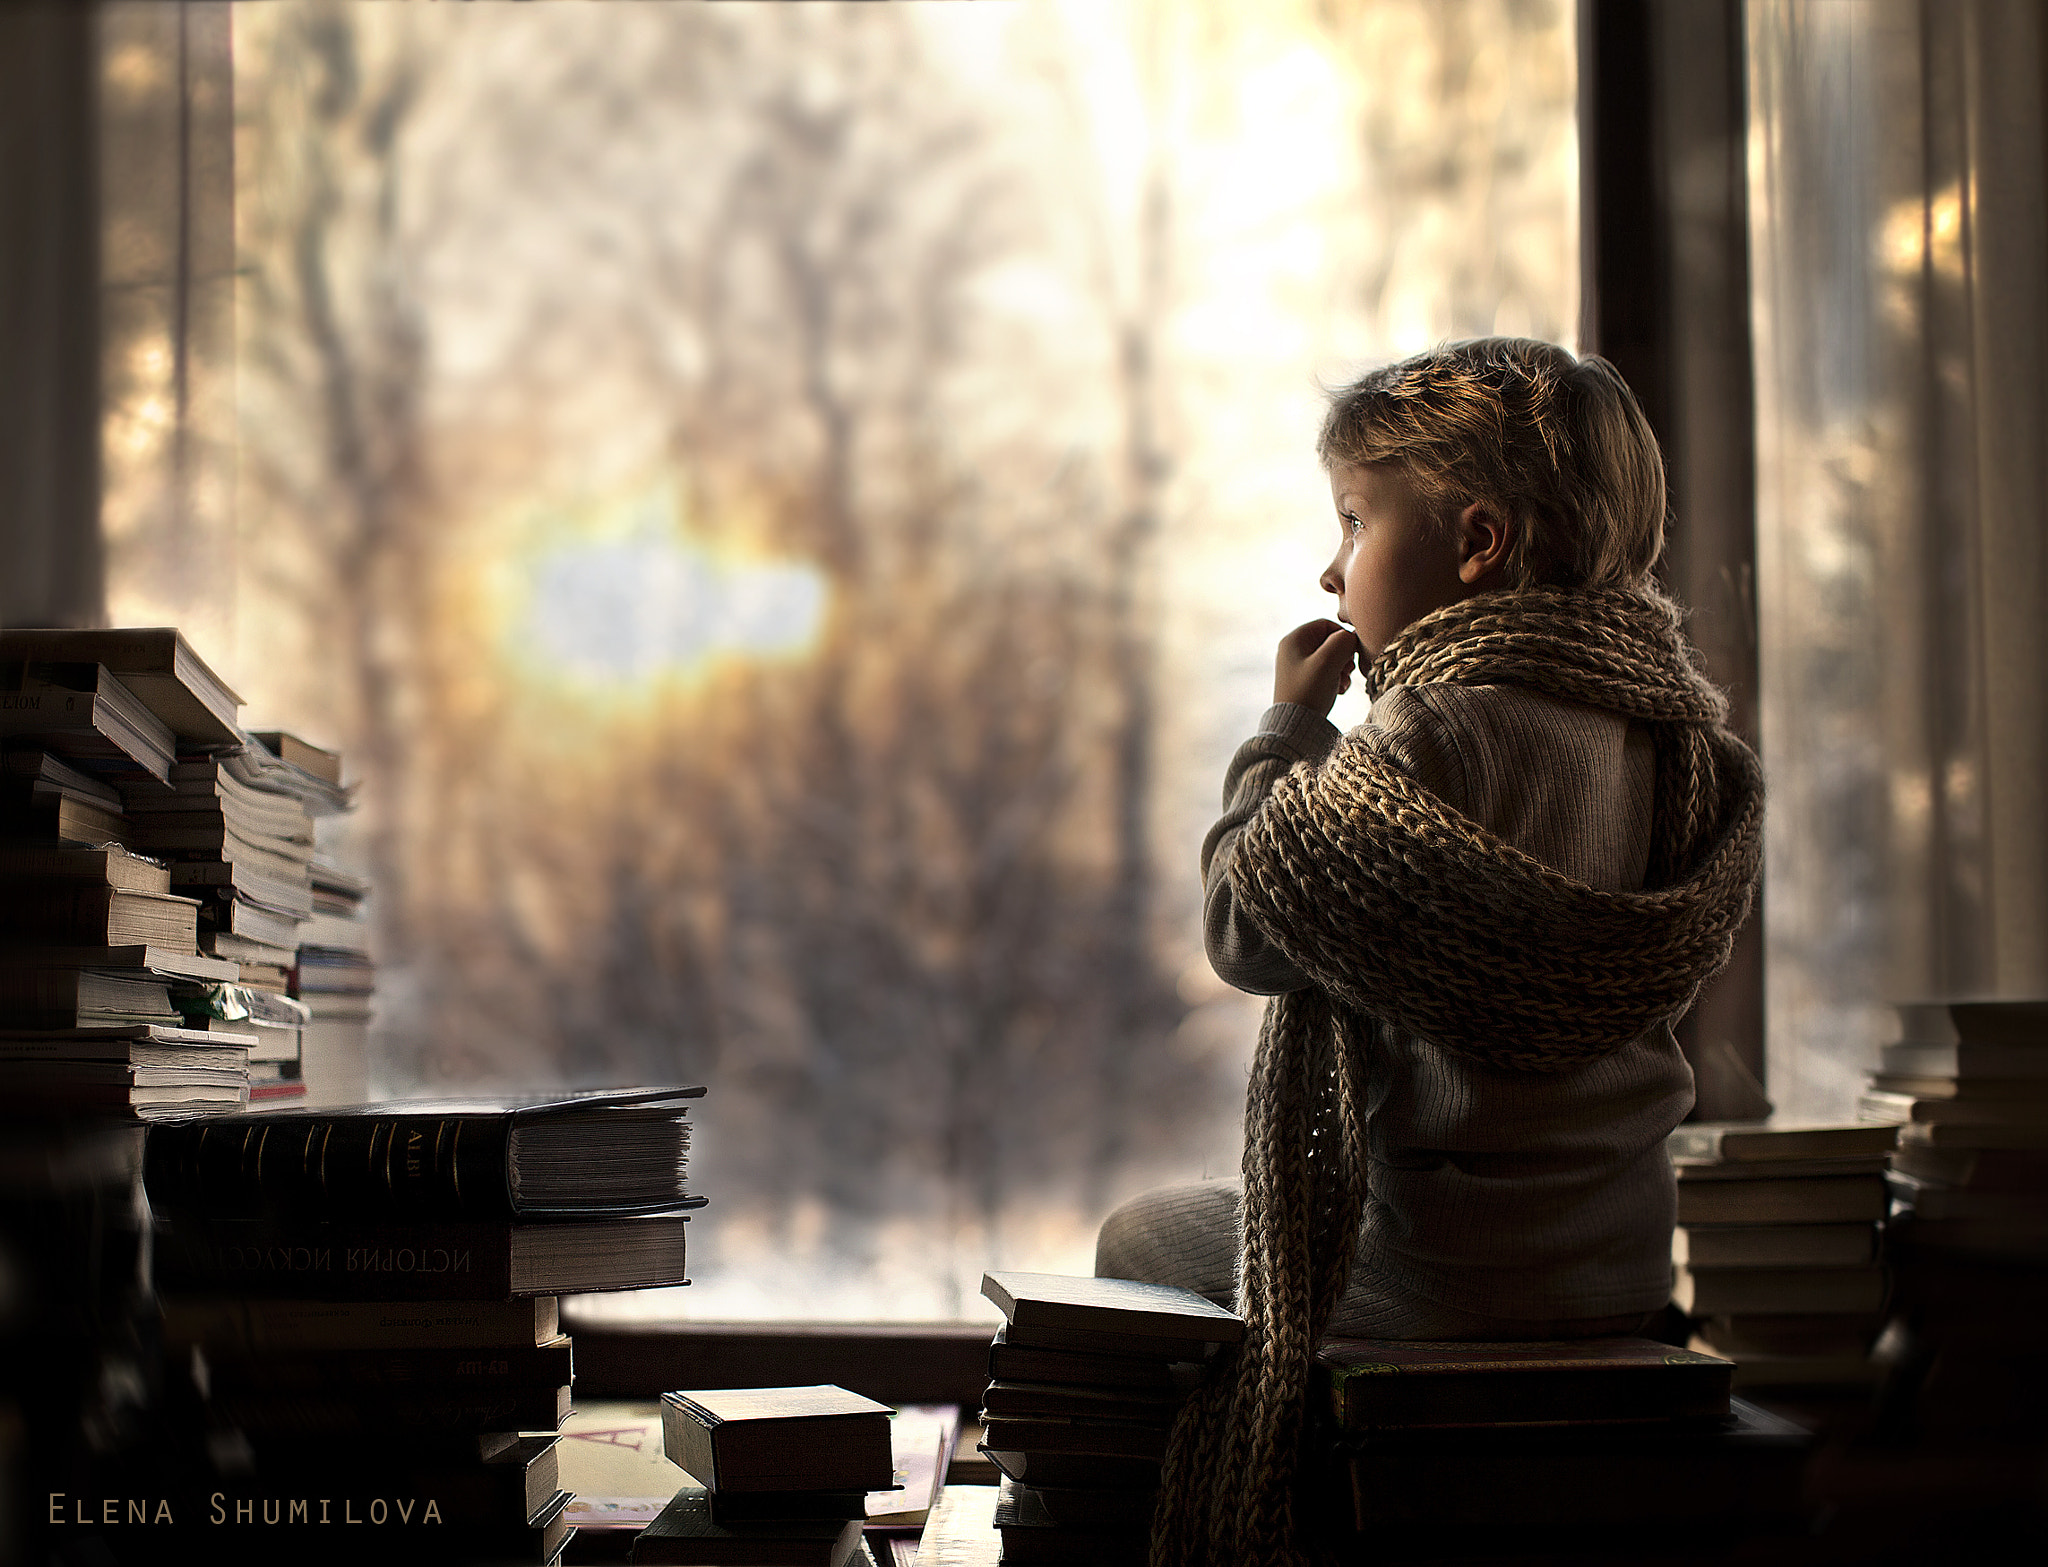 Photograph alone in the library by Elena Shumilova on 500px